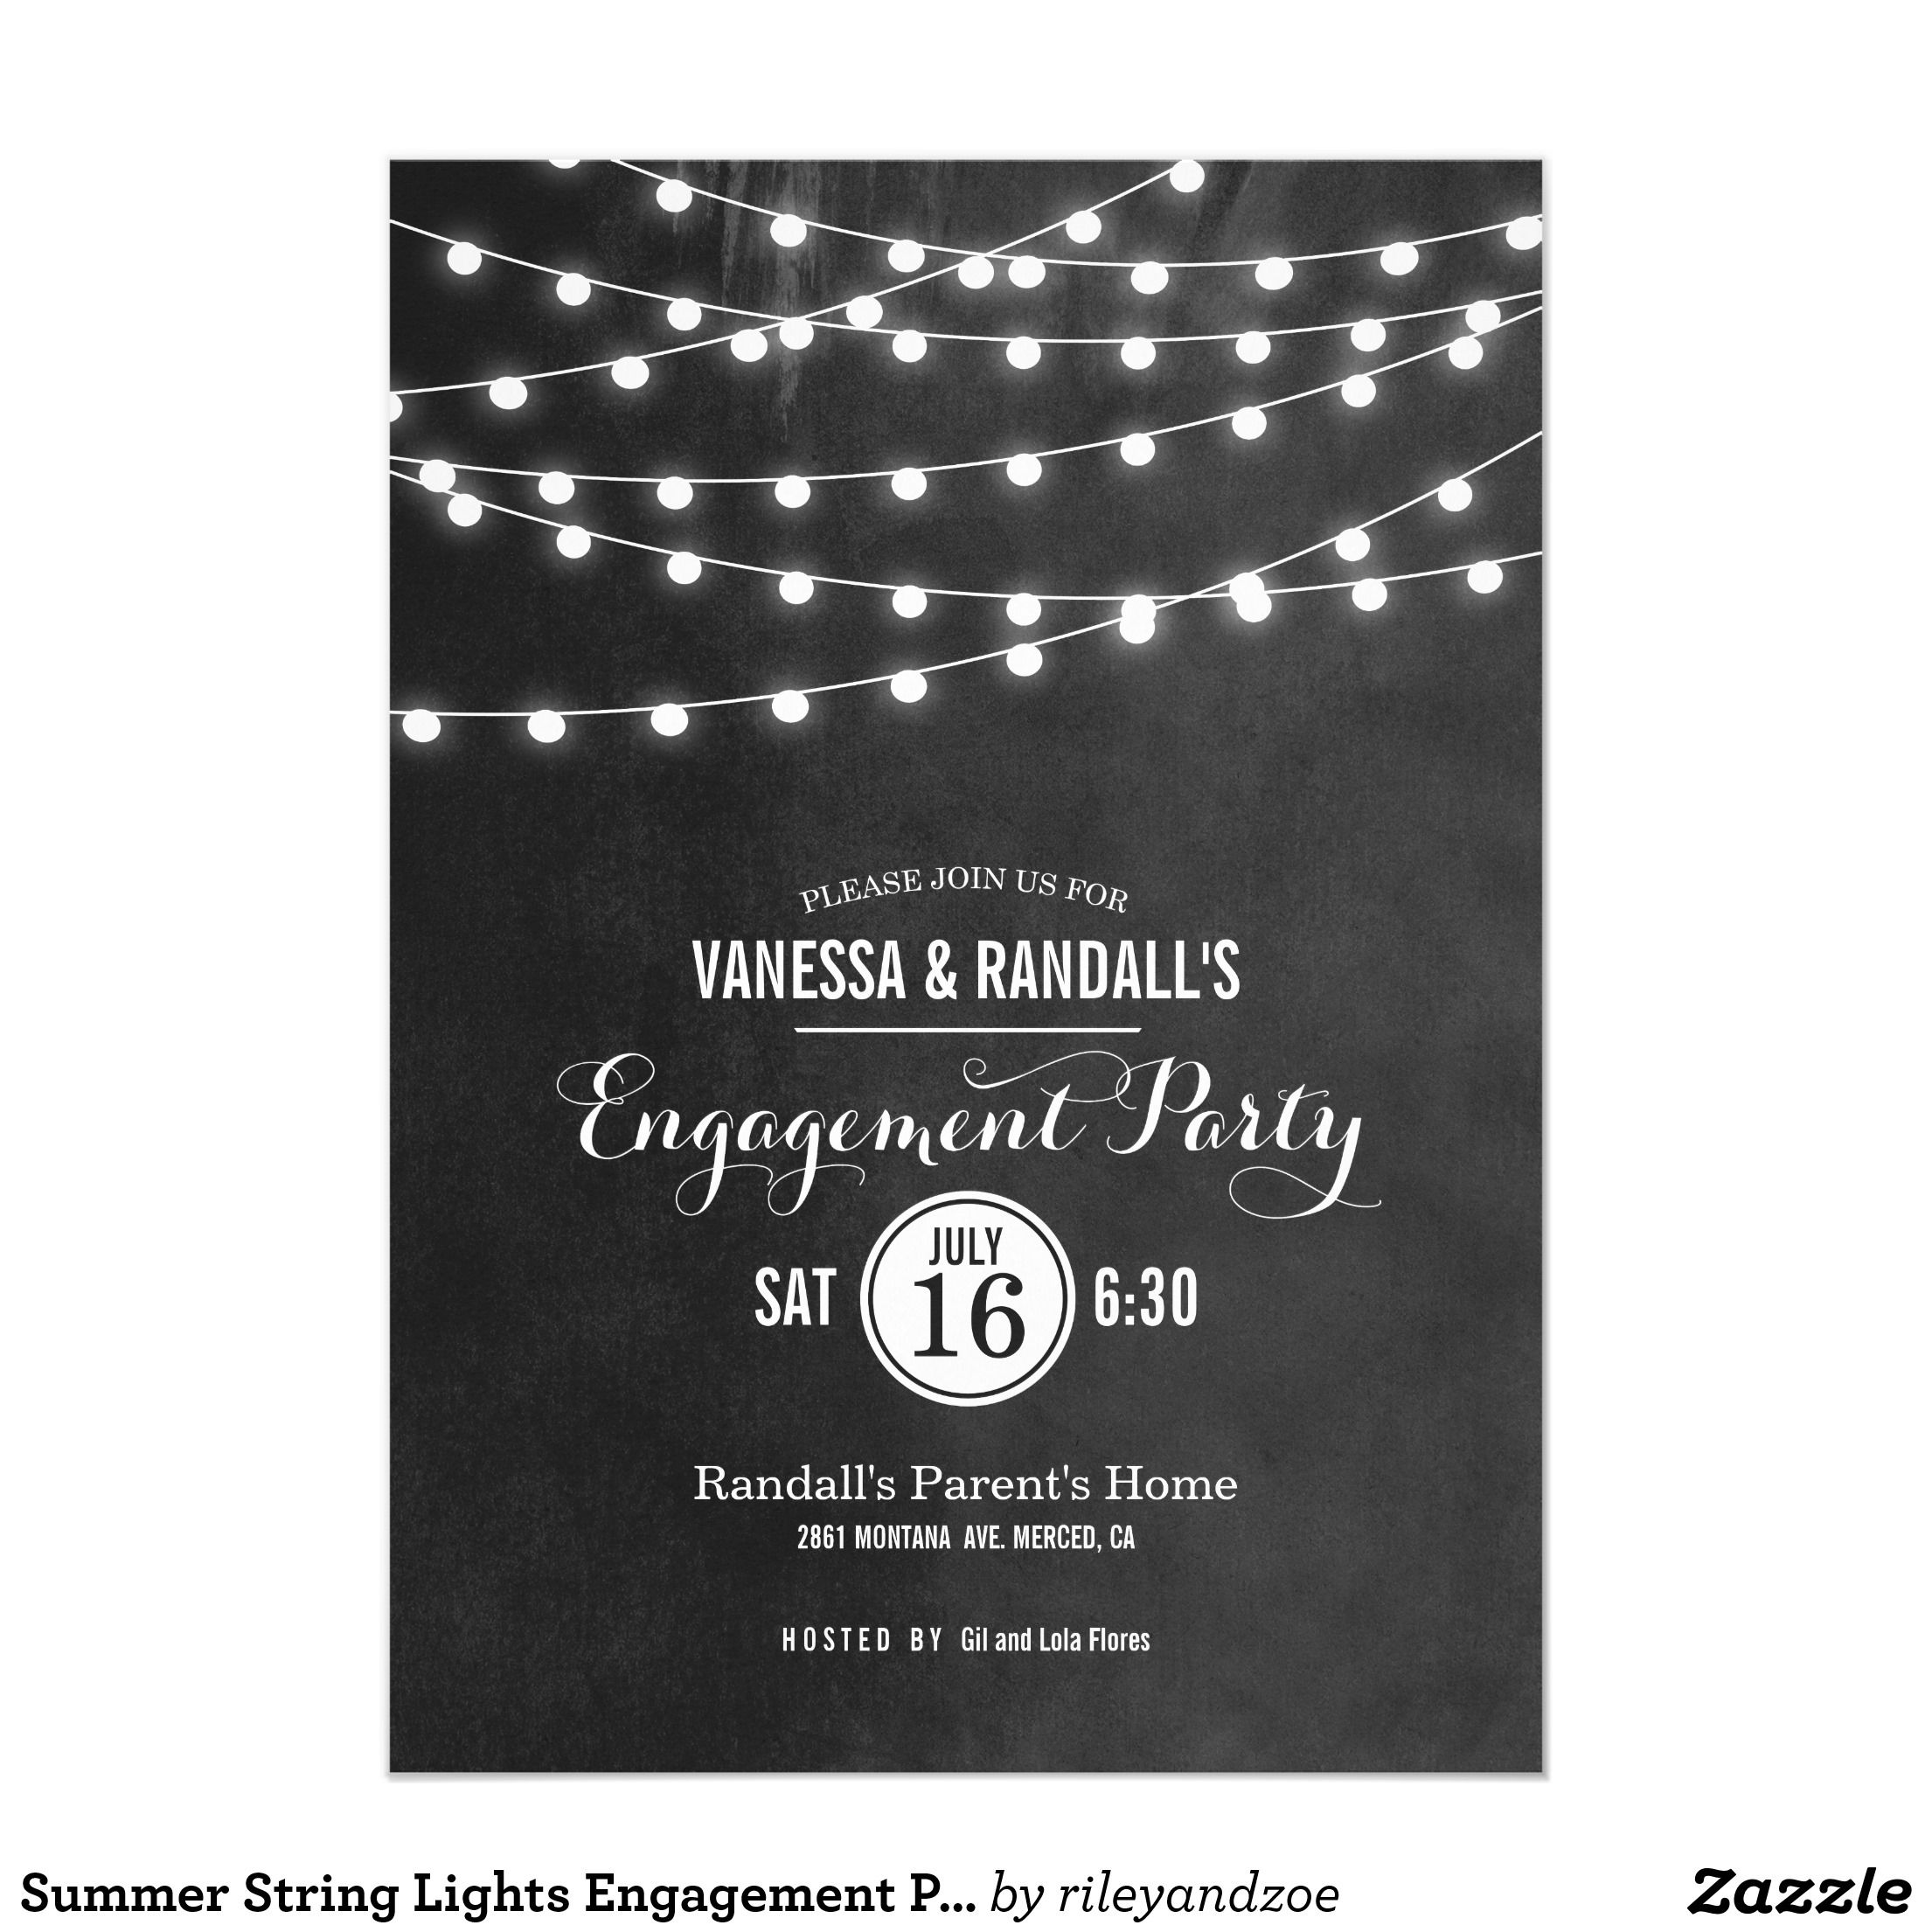 Summer String Lights Engagement Party Invitation My True Likes